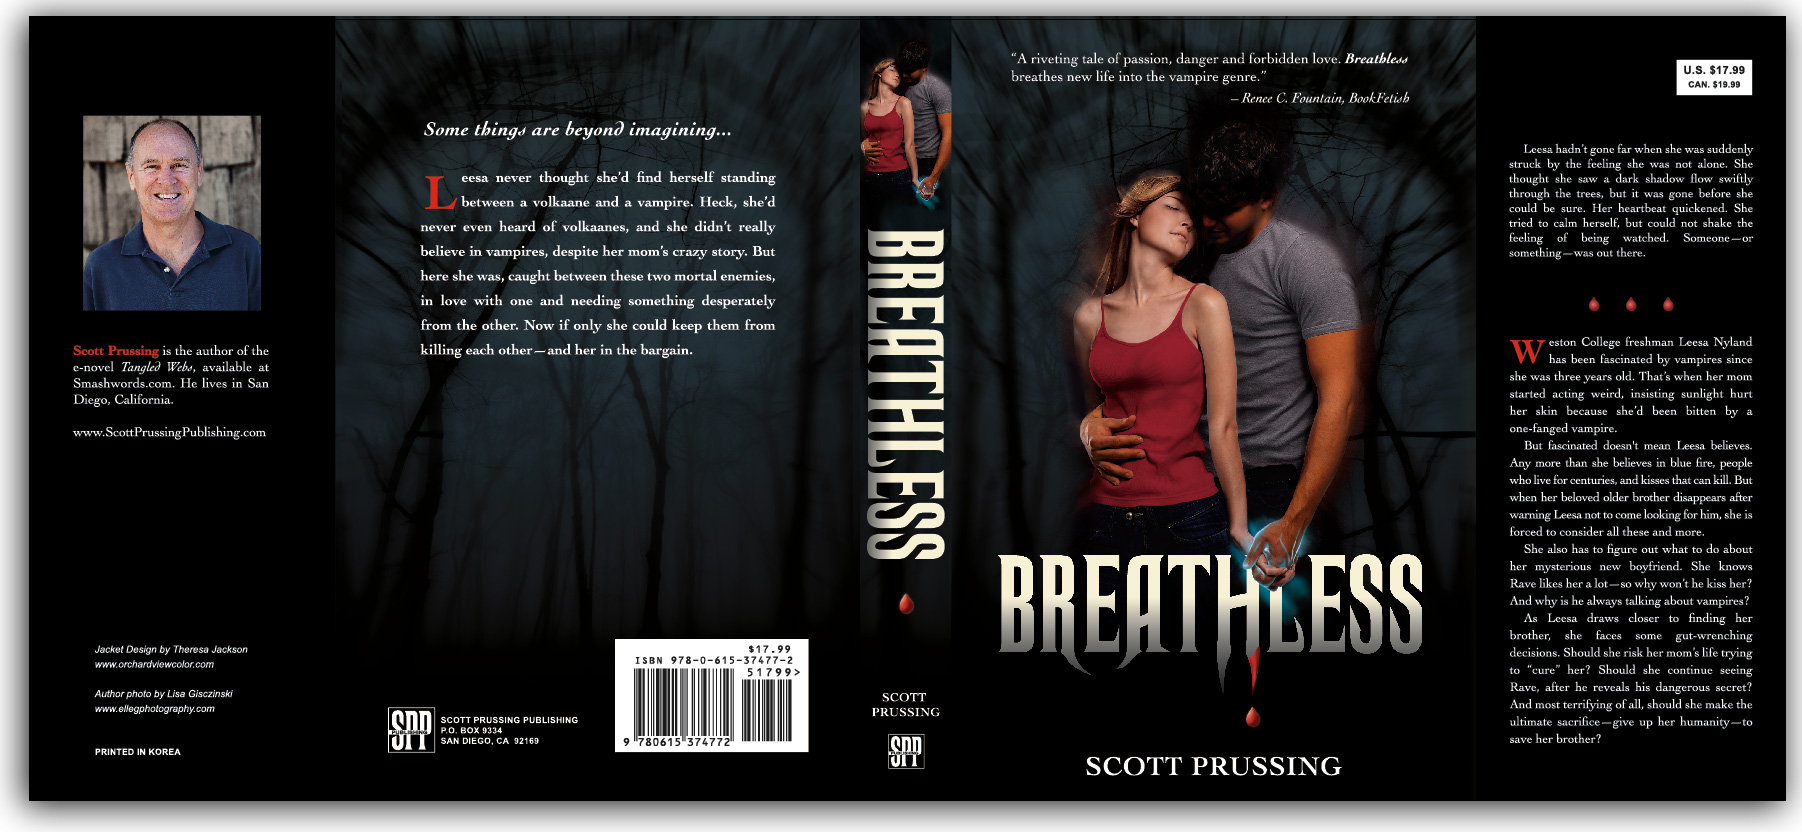 image of Breathless complete book jacket